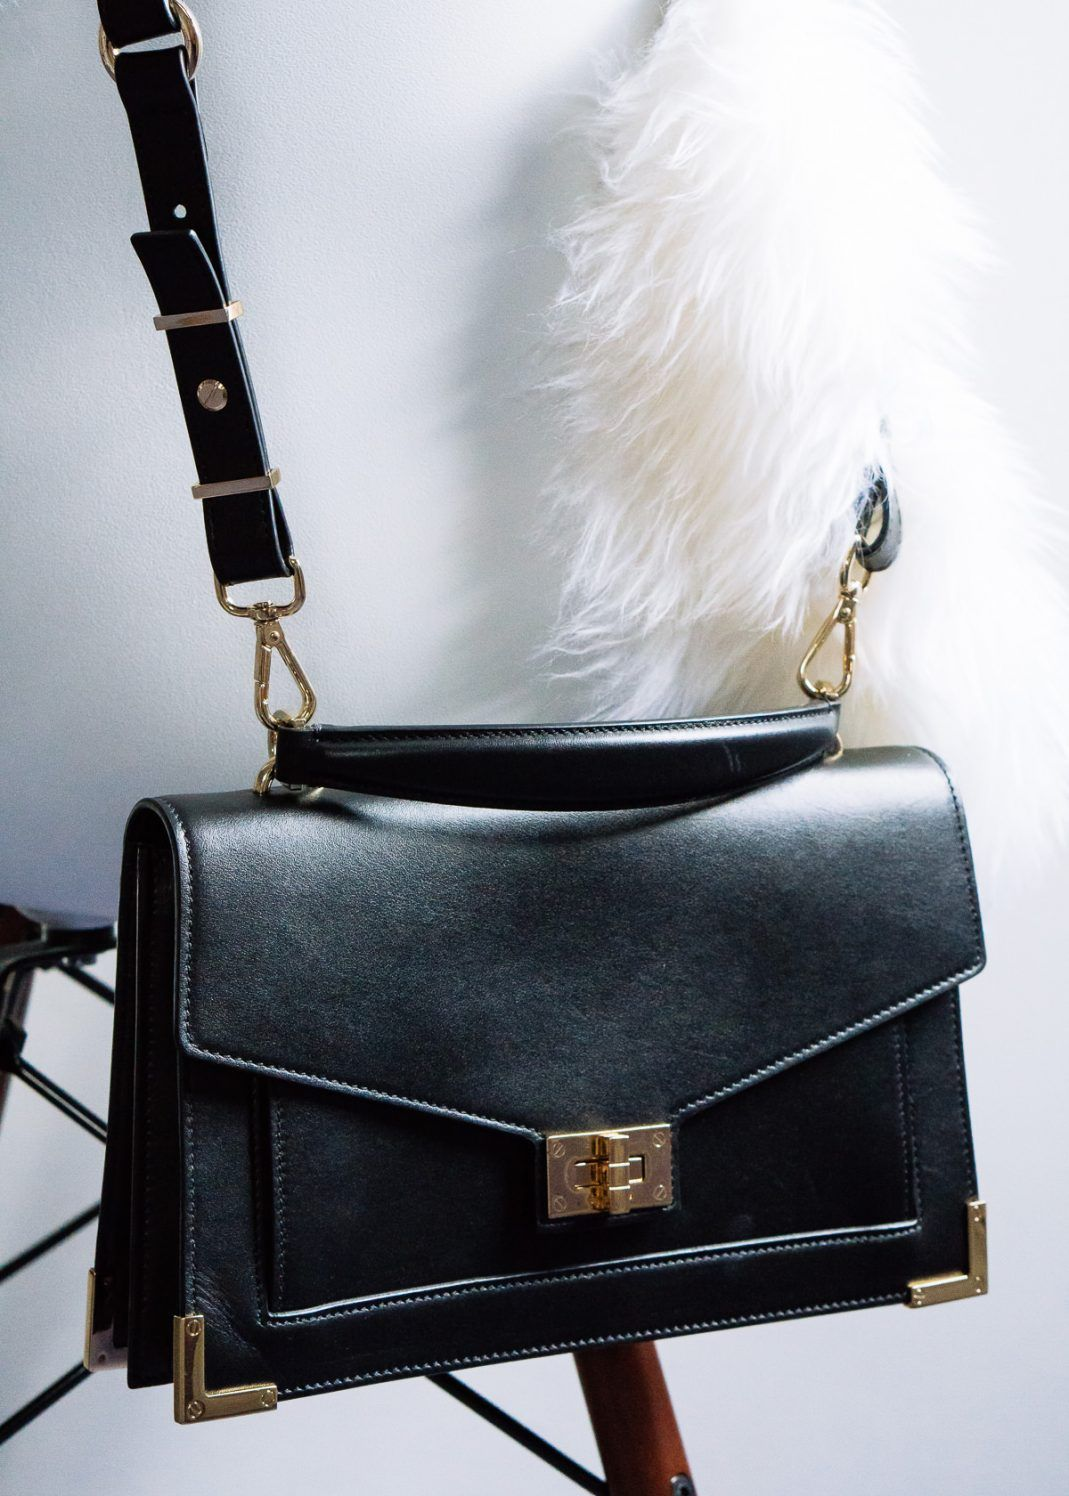 Introducing  The Emily Bag By The Kooples - PurseBlog   Style in ... b91128a649